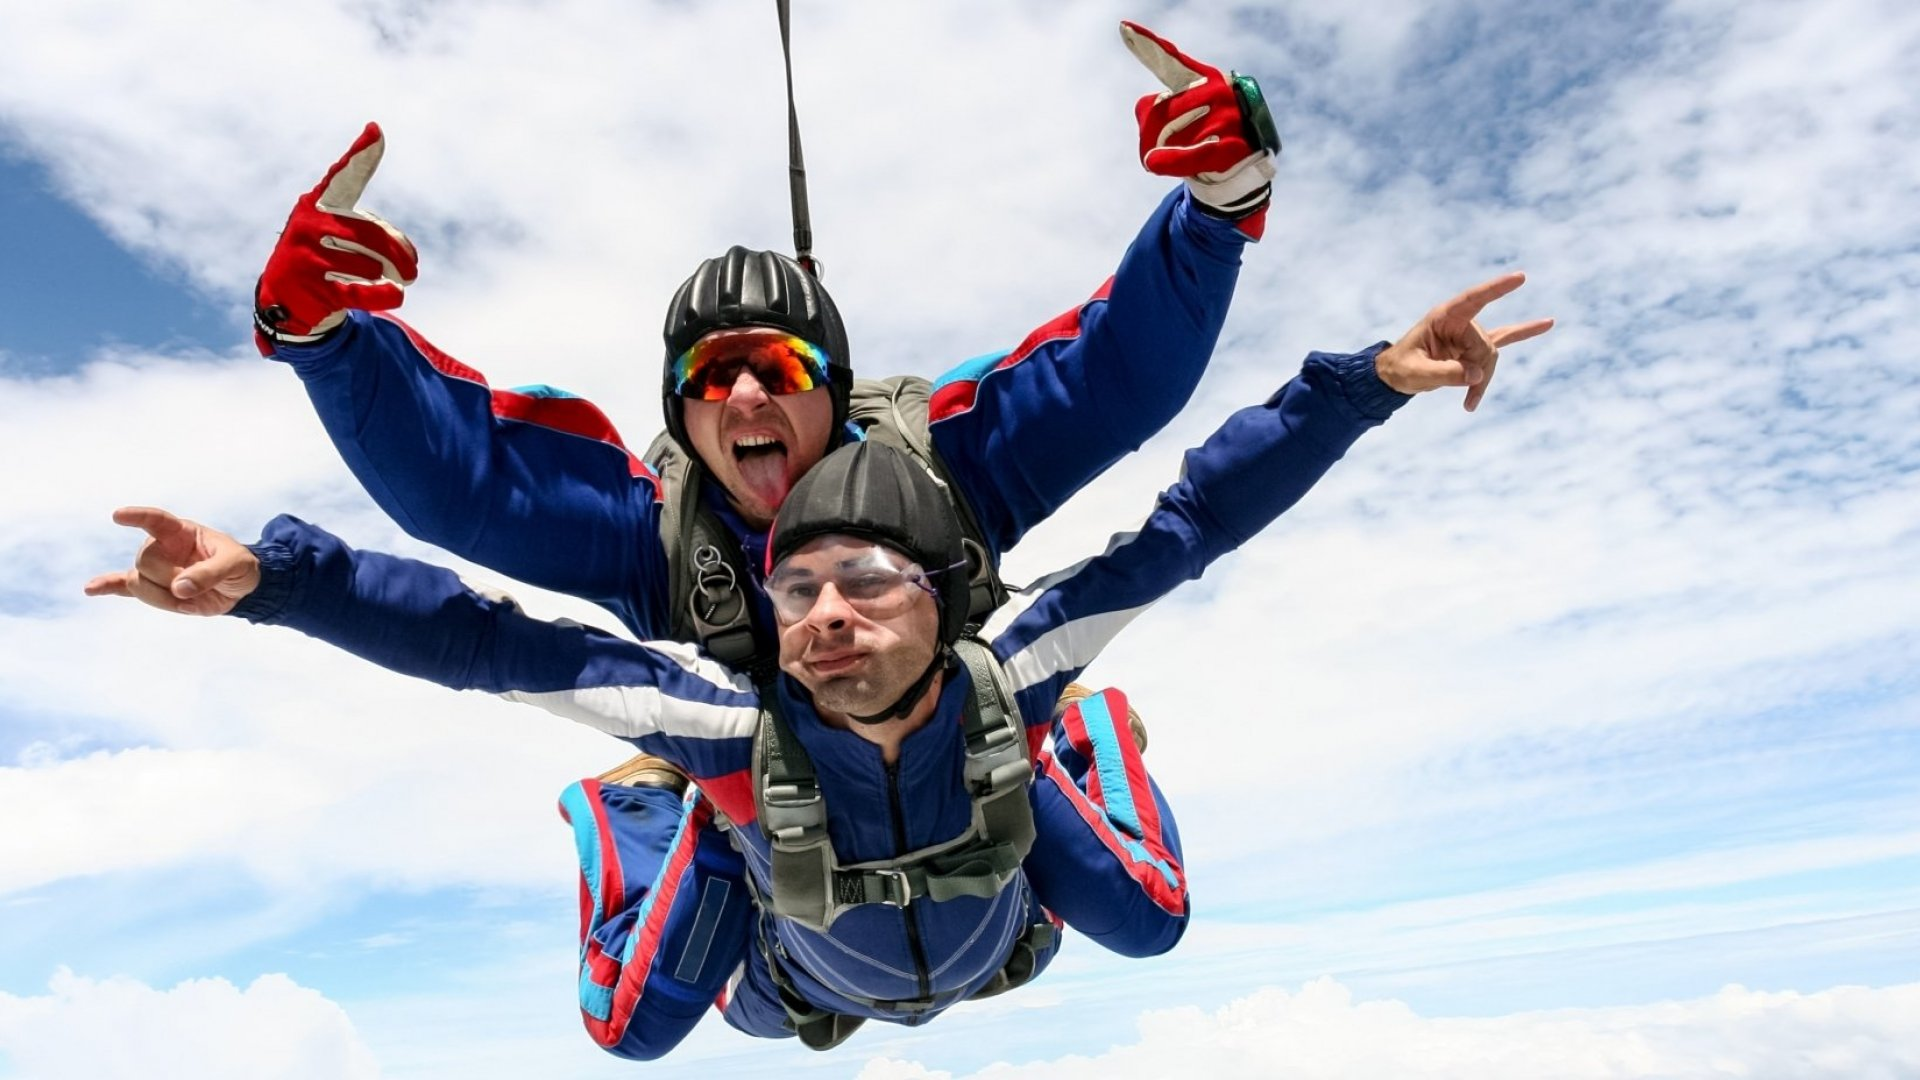 Want to Give Your Brain a Boost? Go Jump Out of a Plane